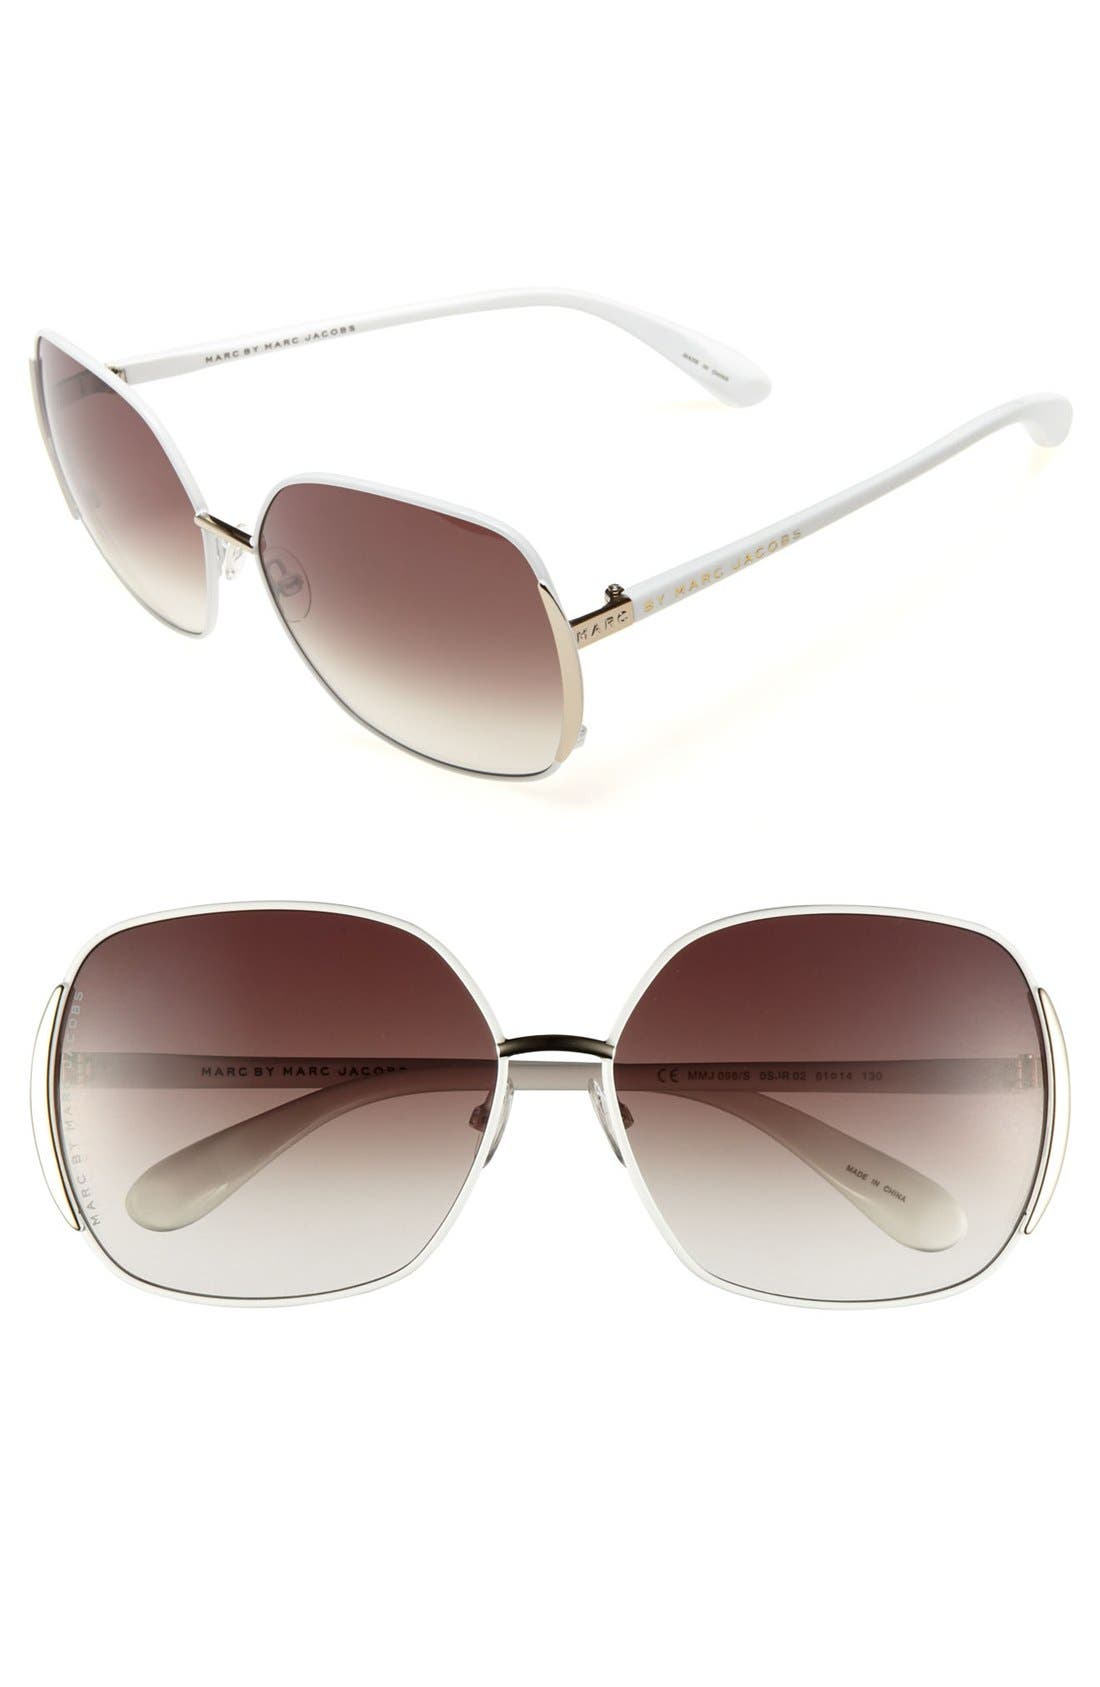 Main Image - MARC BY MARC JACOBS 61mm Vintage Inspired Oversized Sunglasses